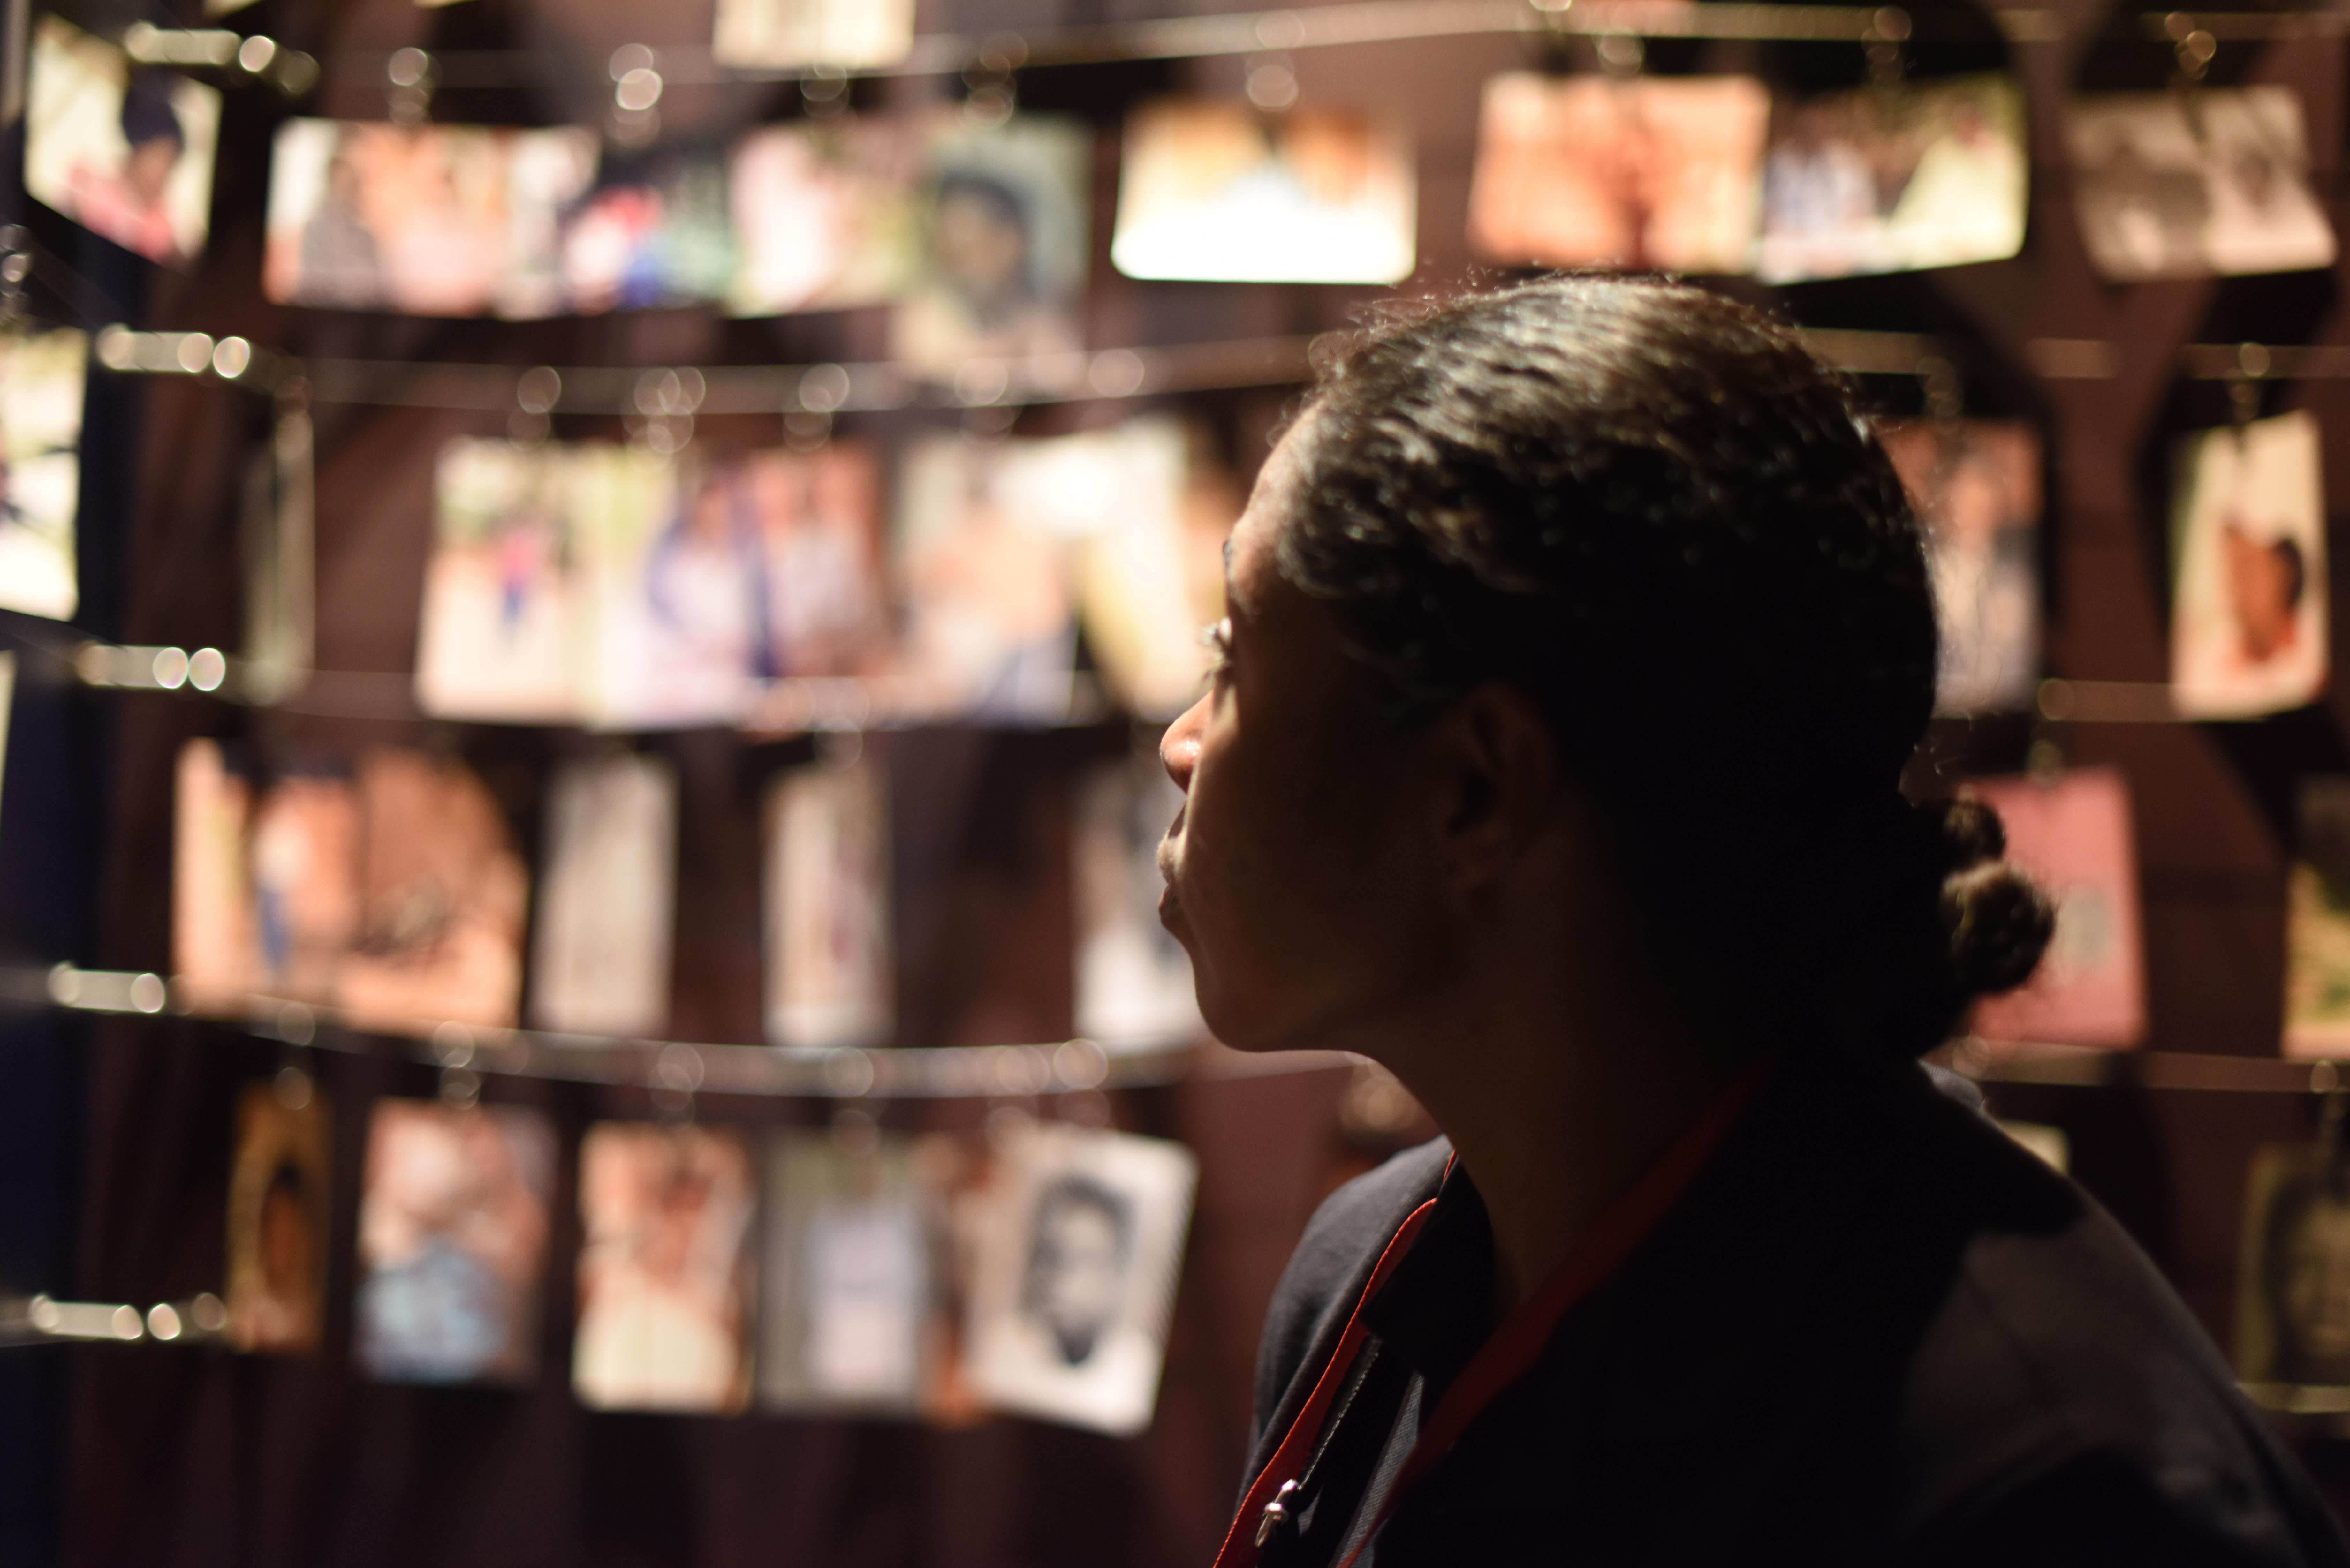 U.S. Navy Senior Chief Cheryl Norris from Combined Joint Task Force-Horn of Africa looks at photos of victims at the Genocide Memorial Museum in Kigali, Rwanda, Dec. 16, 2015. Family members of those lost in the genocide contributed photos to the museum in their memory. The photo room contains thousands of personal photos.  (U.S. Air Force photo by Staff Sgt. Victoria Sneed)